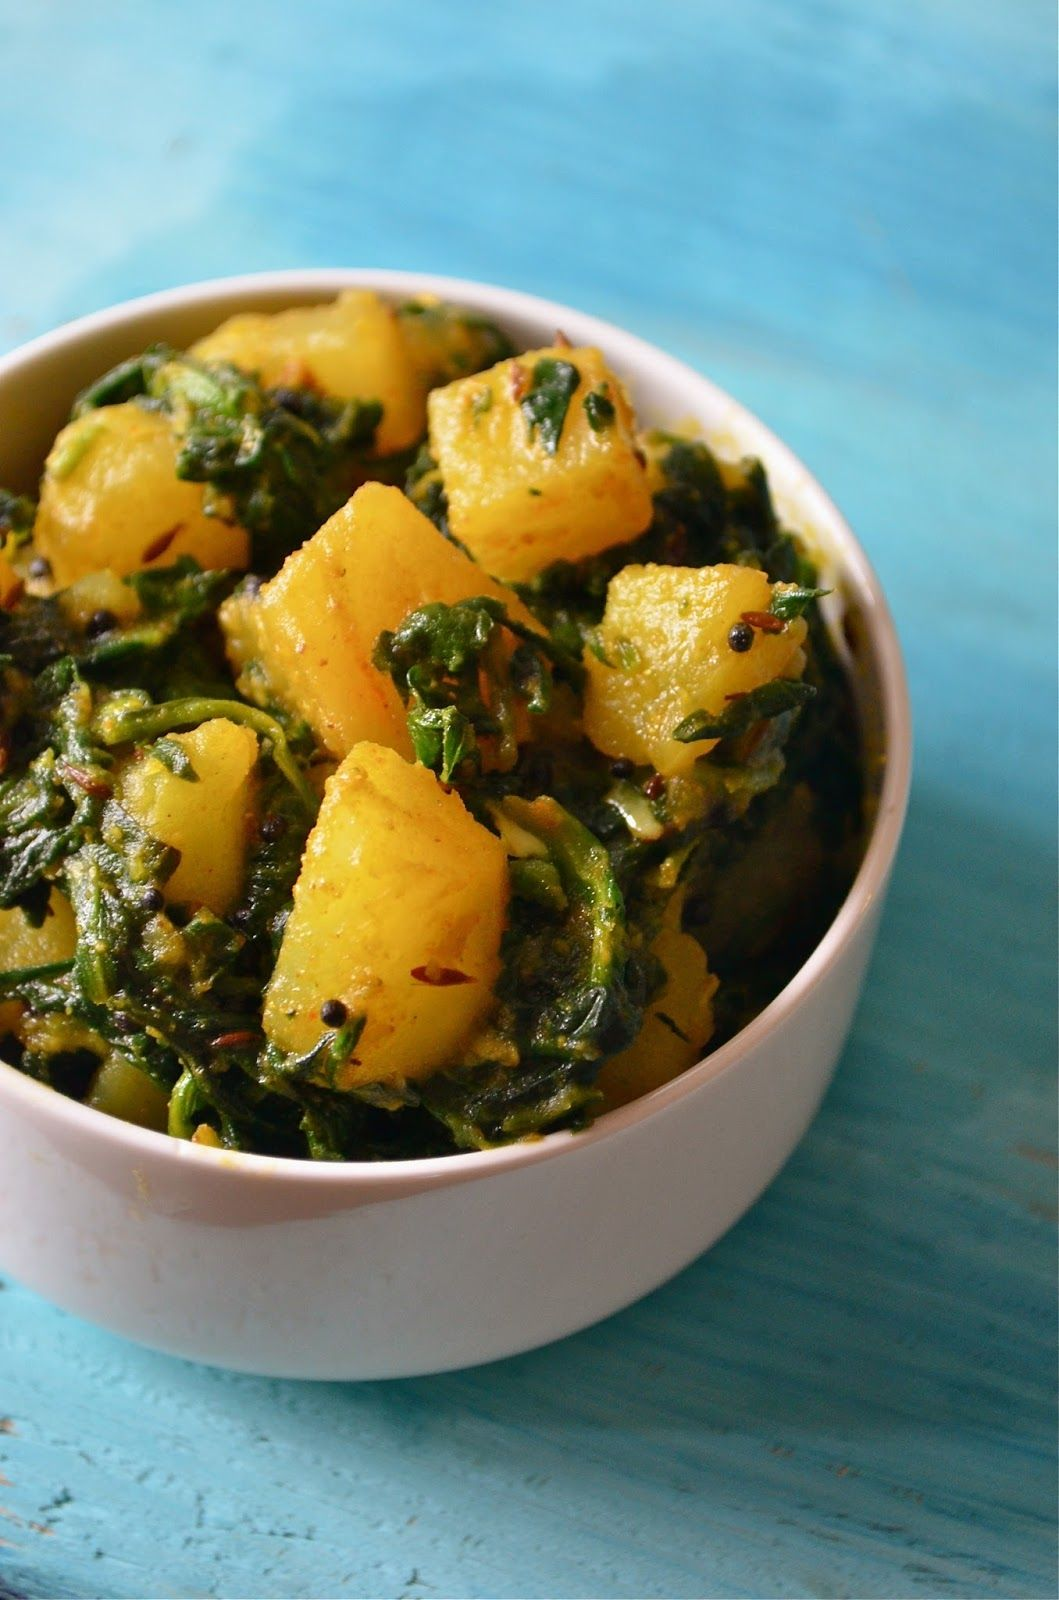 Stir fried potato and spinach aaloo palak fried potatoes stir aaloo palak spinach potato stirfried potato and spinach no onion garlic recipes forumfinder Images